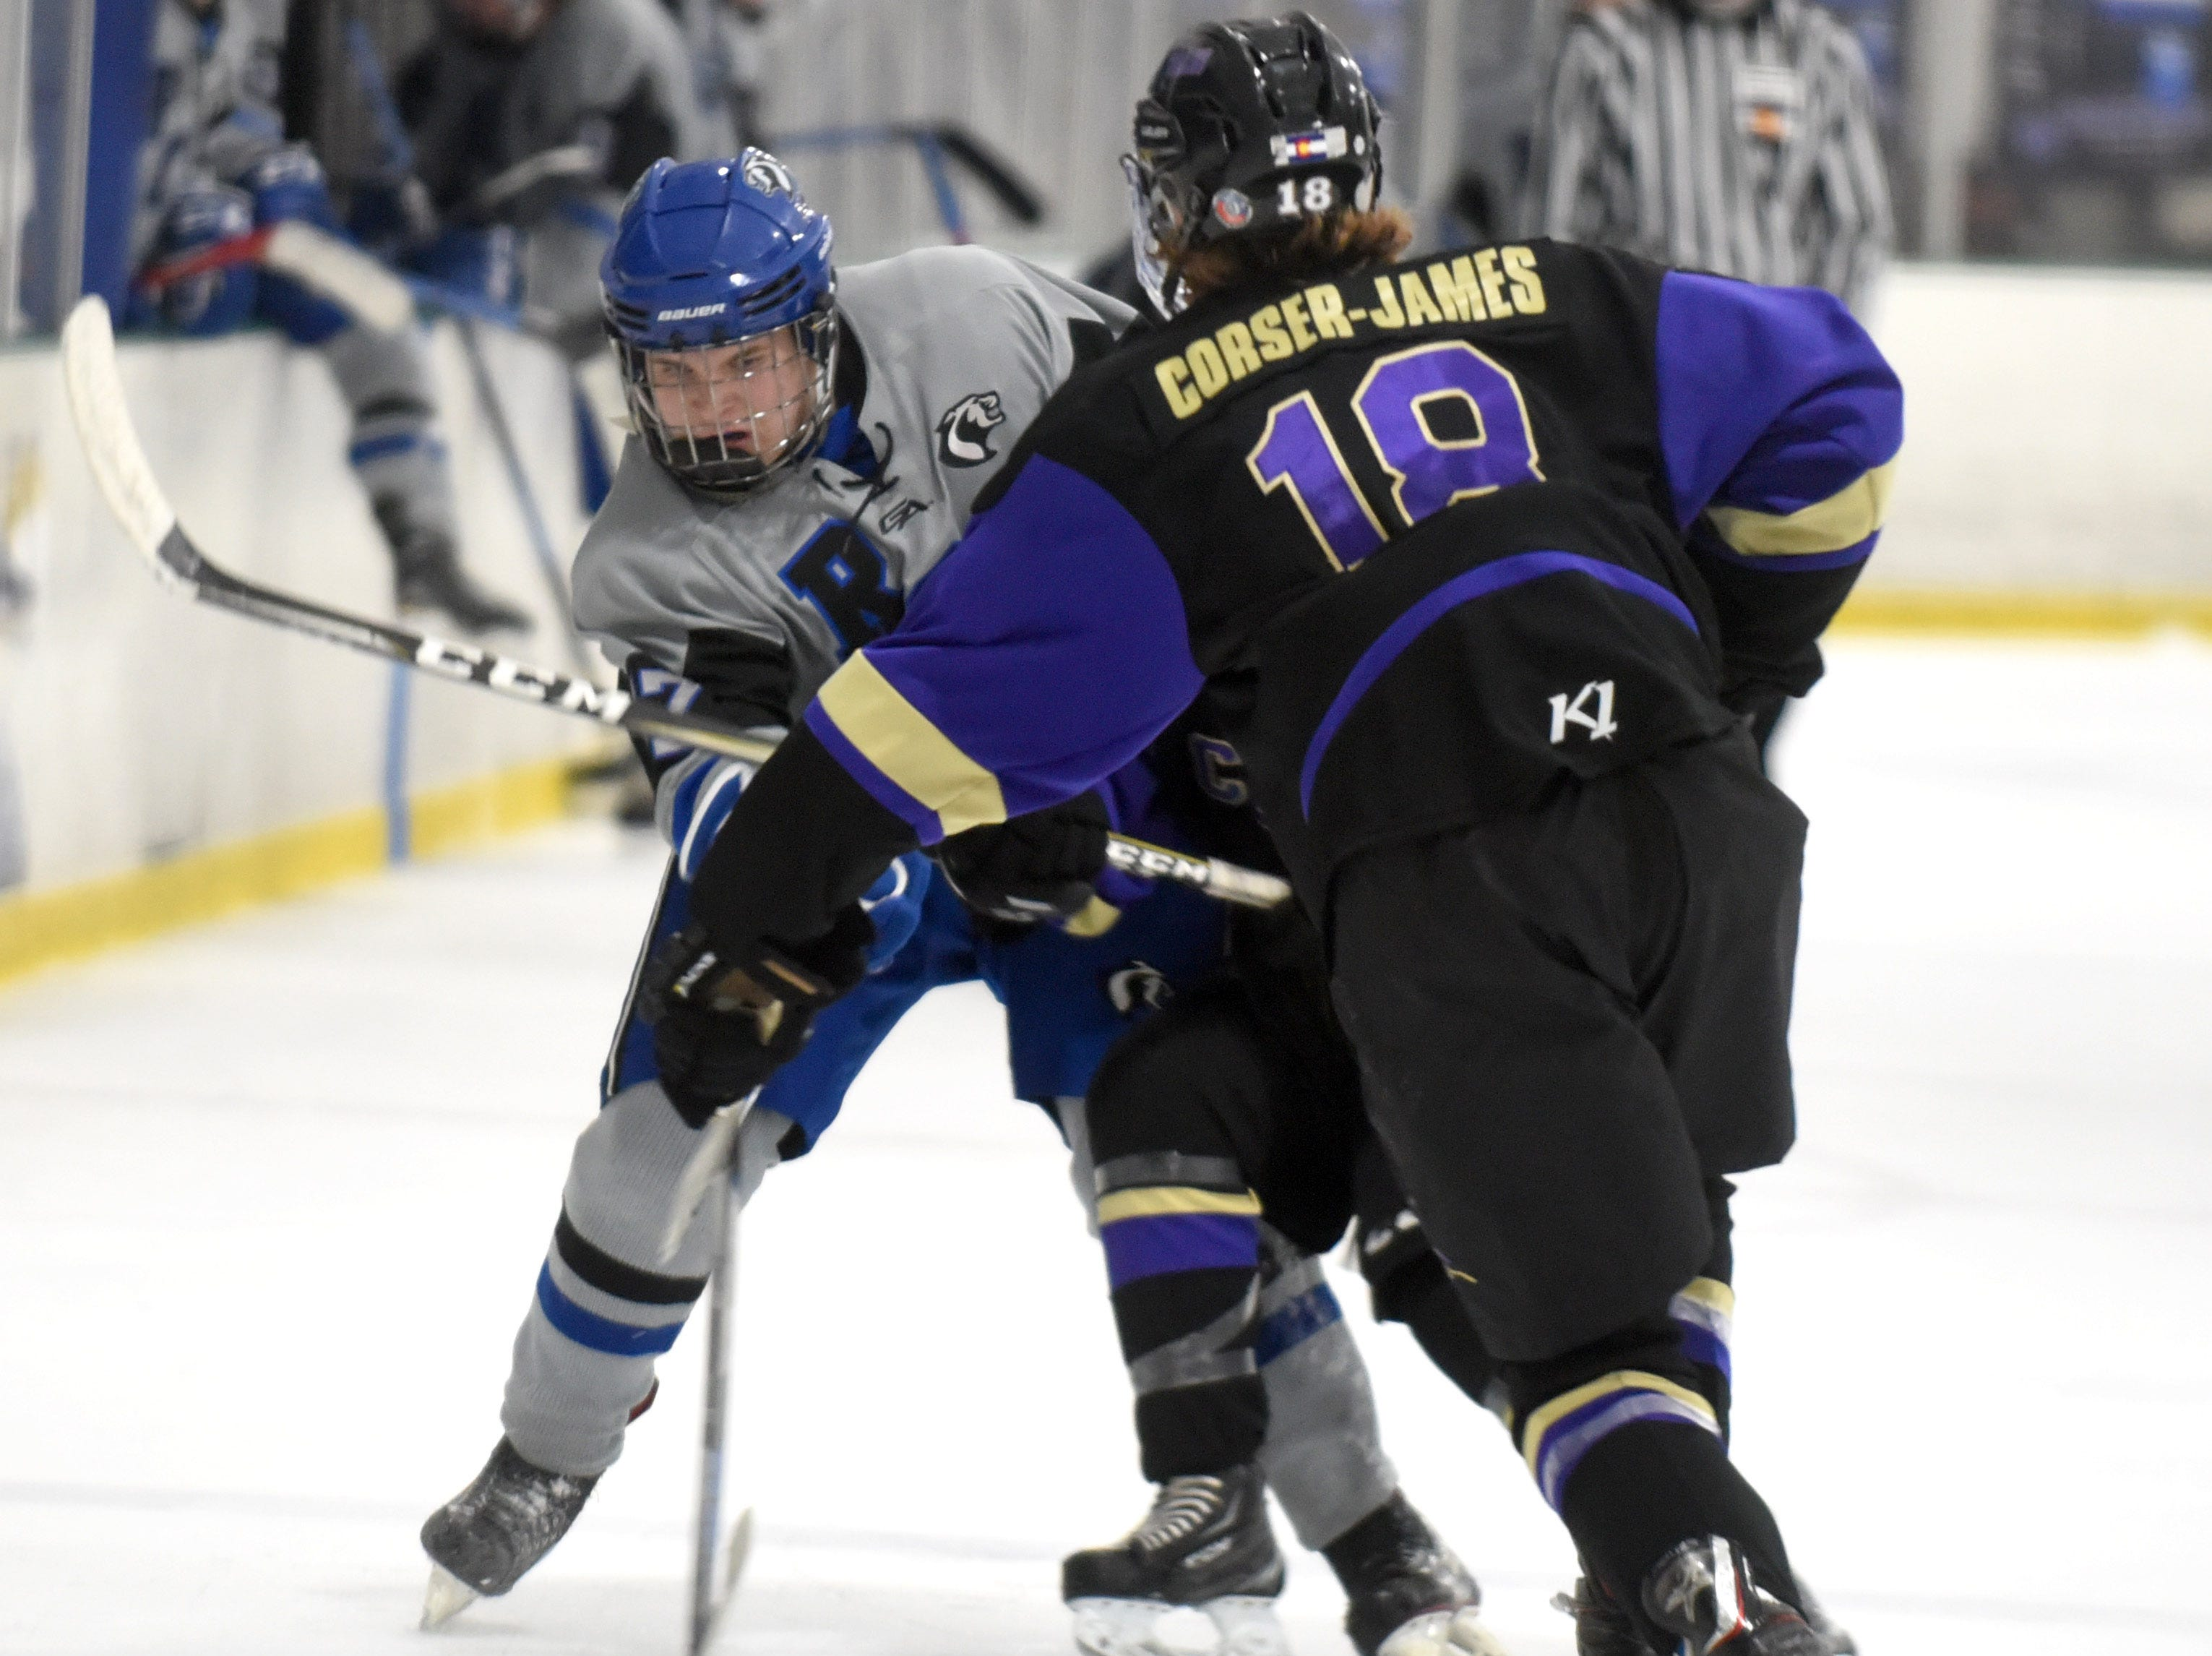 Resurrection Christian's Treighton Tadlock tries to shot around Fort Collins' Jesse Corser-James during the game on Saturday, Feb 2, at NoCo Ice Center, 7900 N Fairgrounds Ave, in Fort Collins.